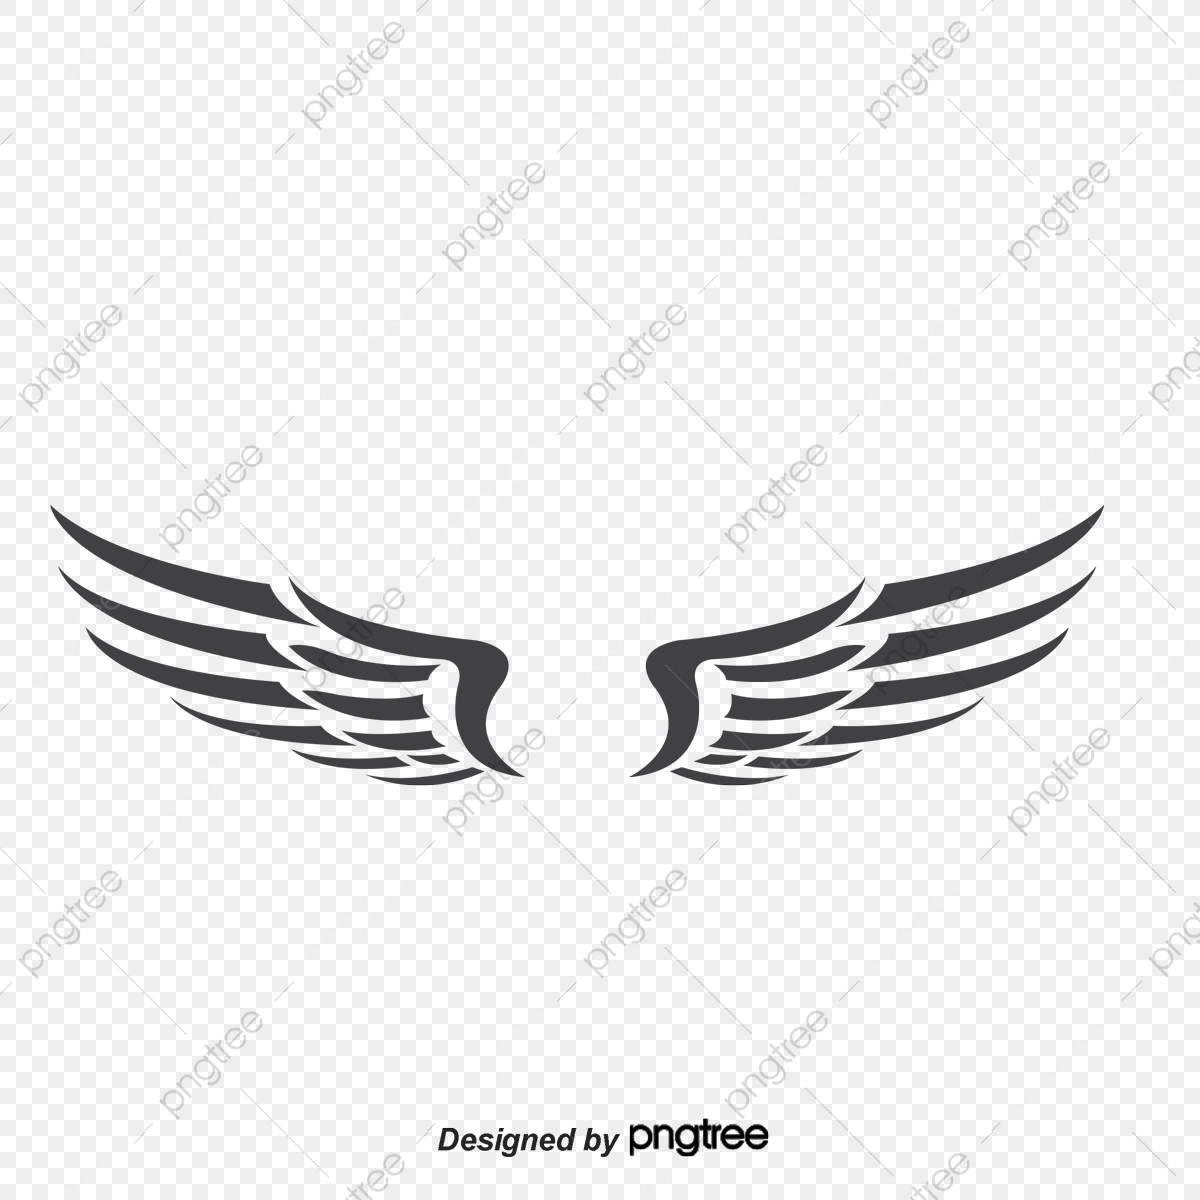 Wings Volleyball Logo Image Volleyball Clipart Logo Clipart